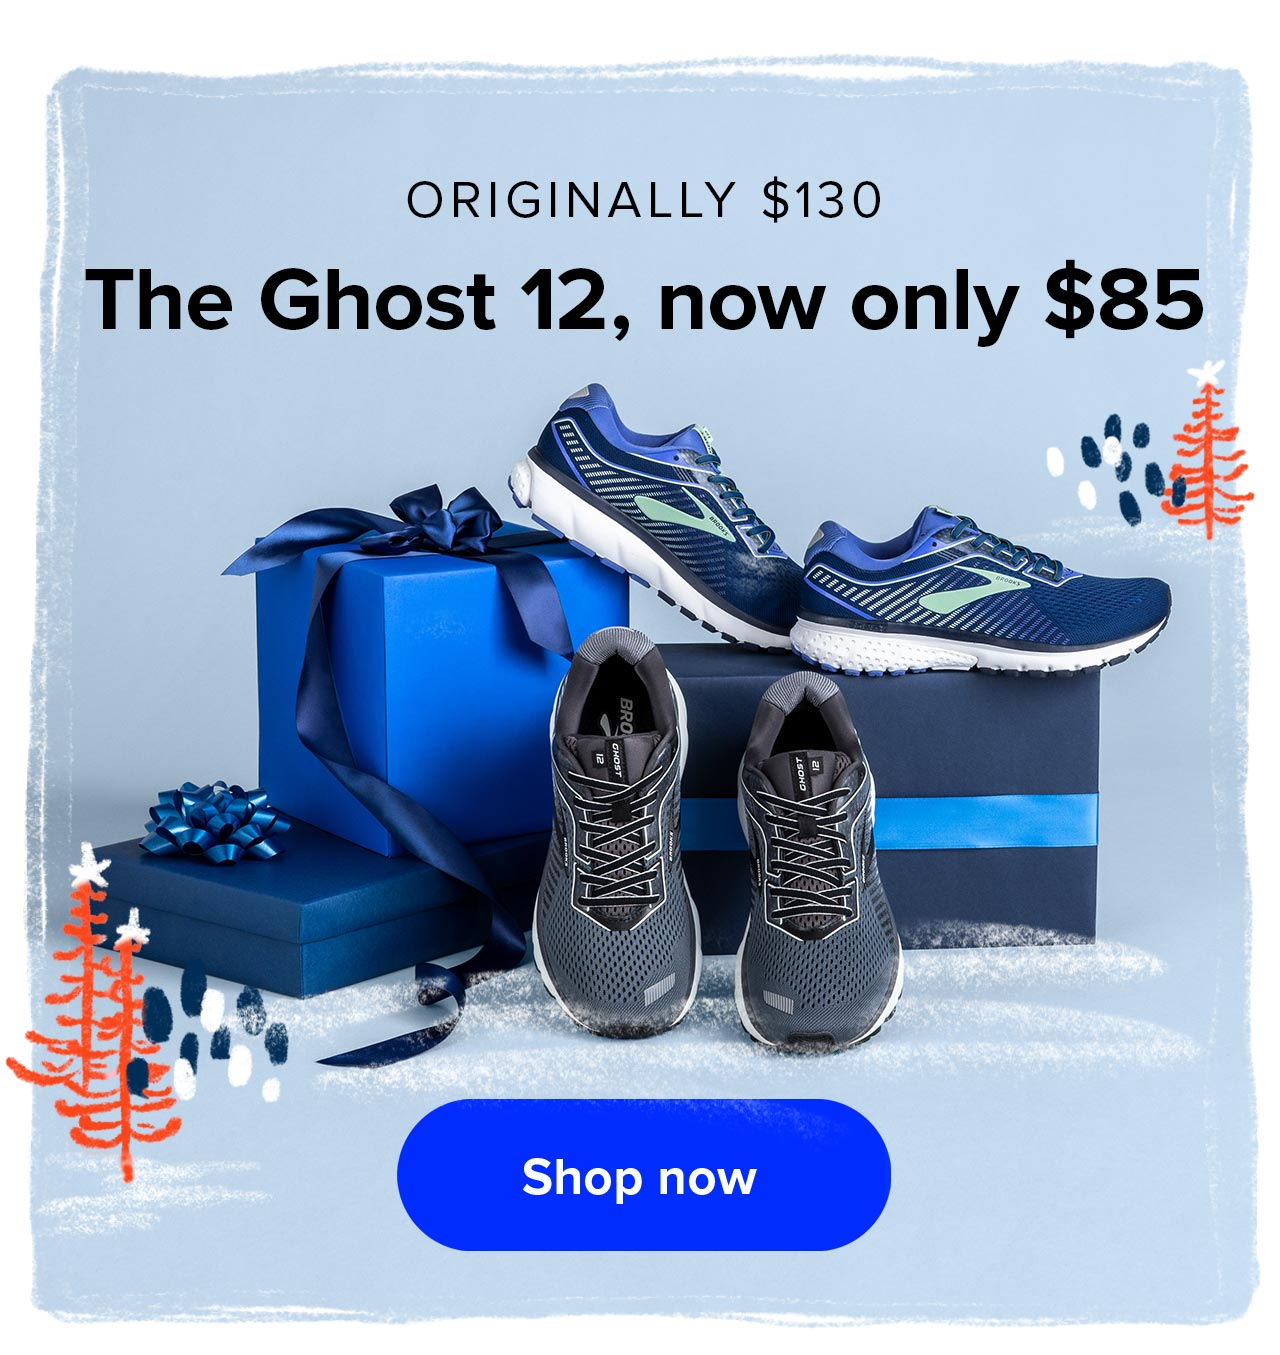 The Ghost 12, now only $85